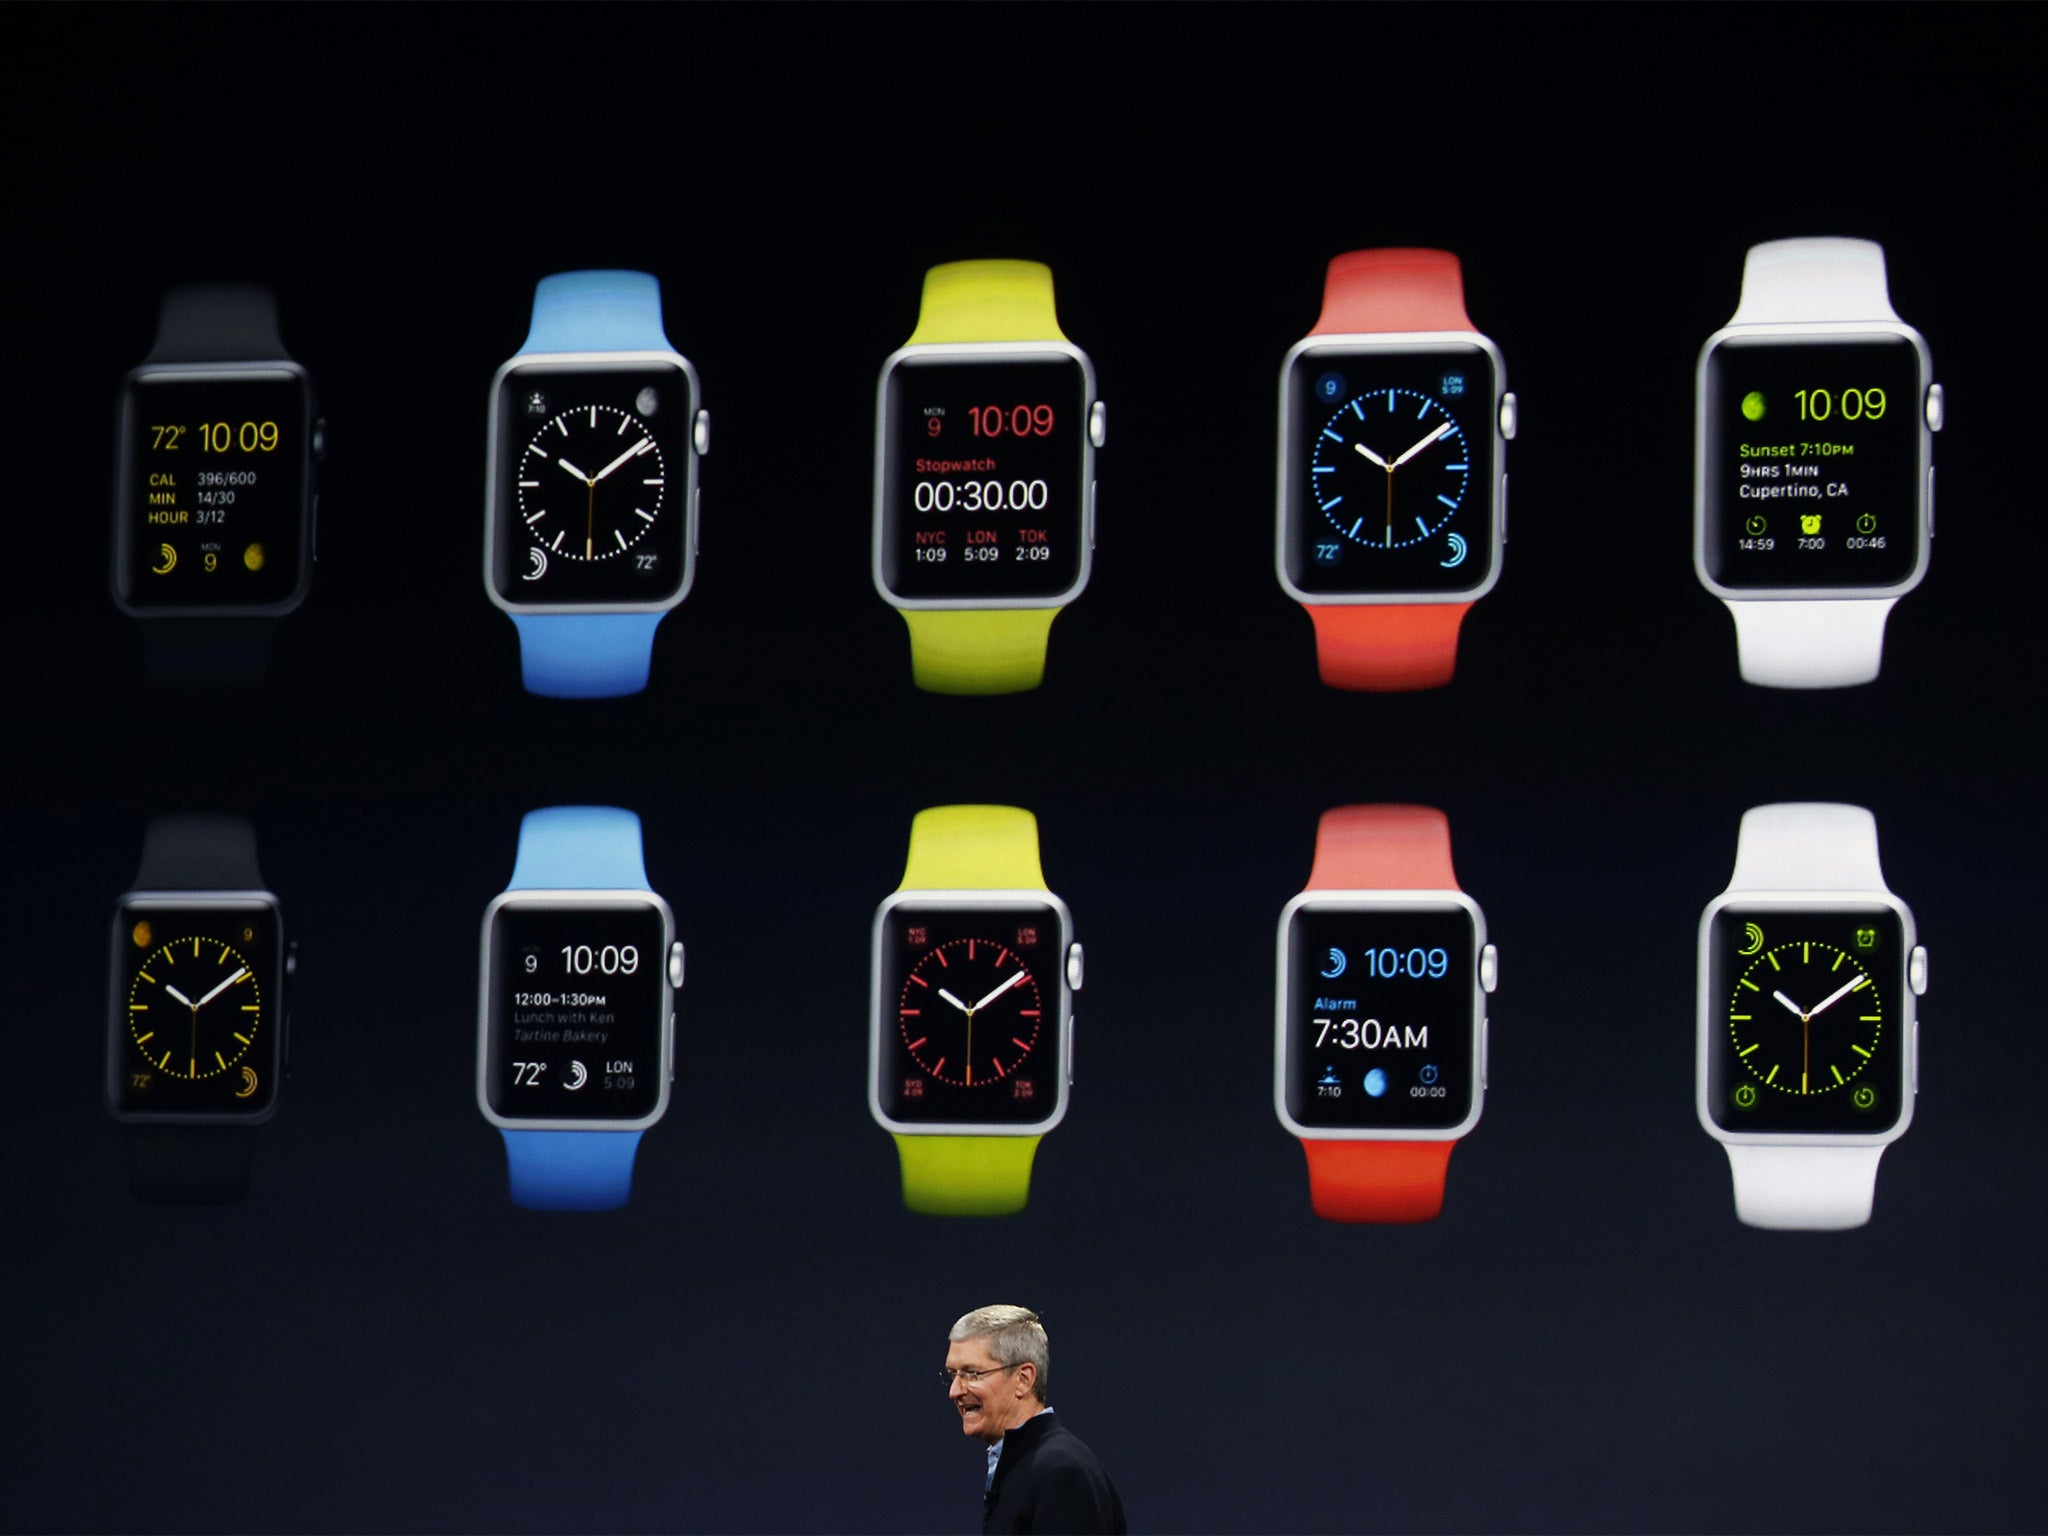 From pocket watch to wristwatch to Apple Watch? Time will